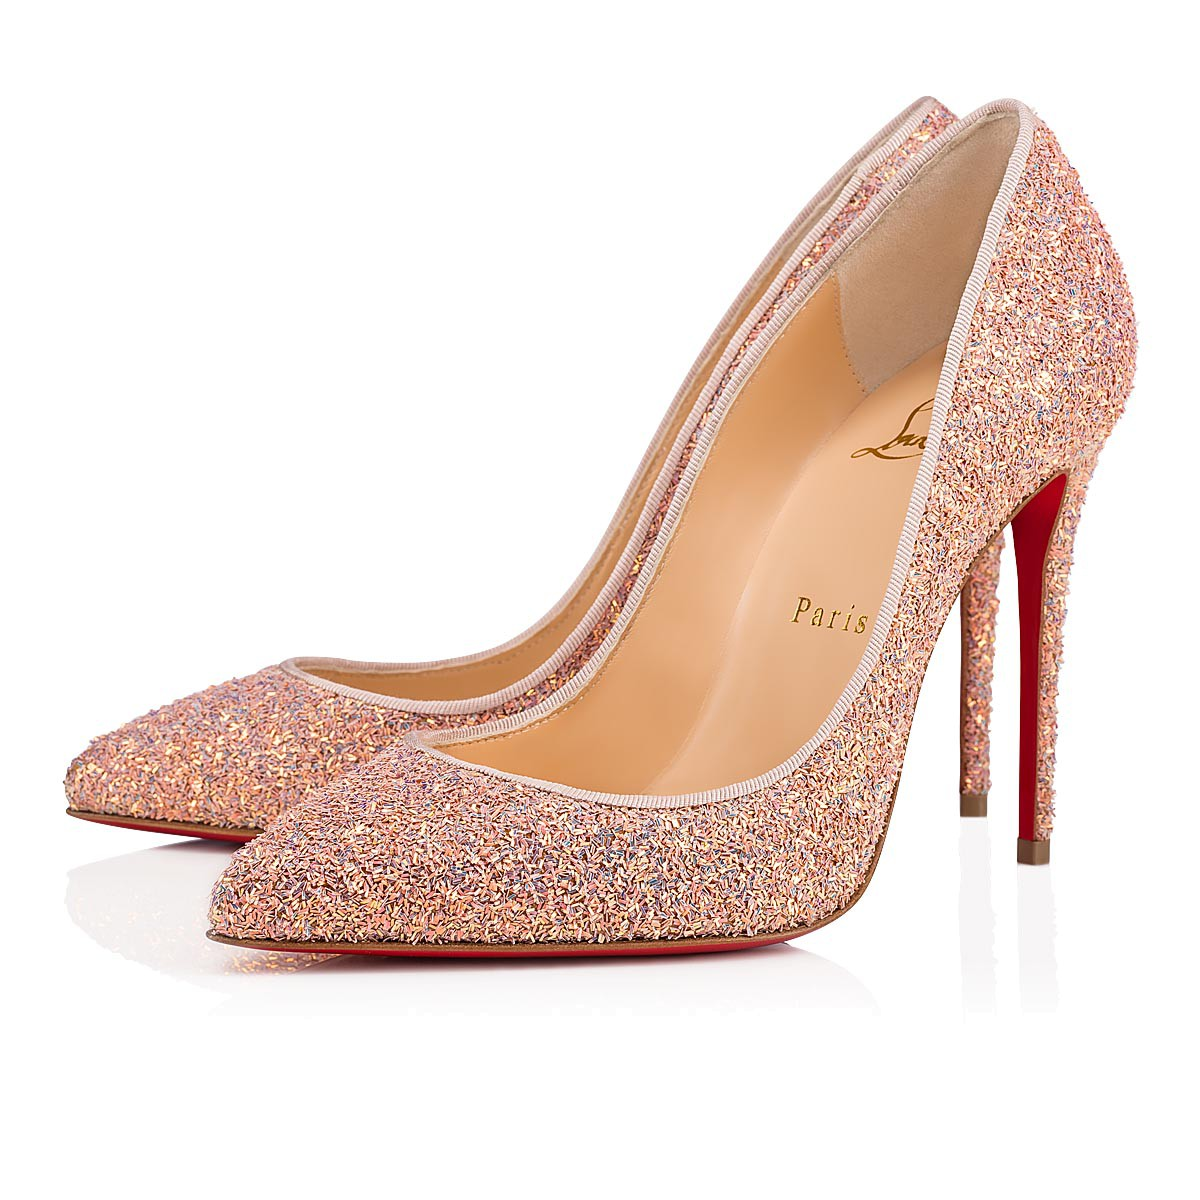 ウィメンズシューズ - Pigalle Follies - Christian Louboutin